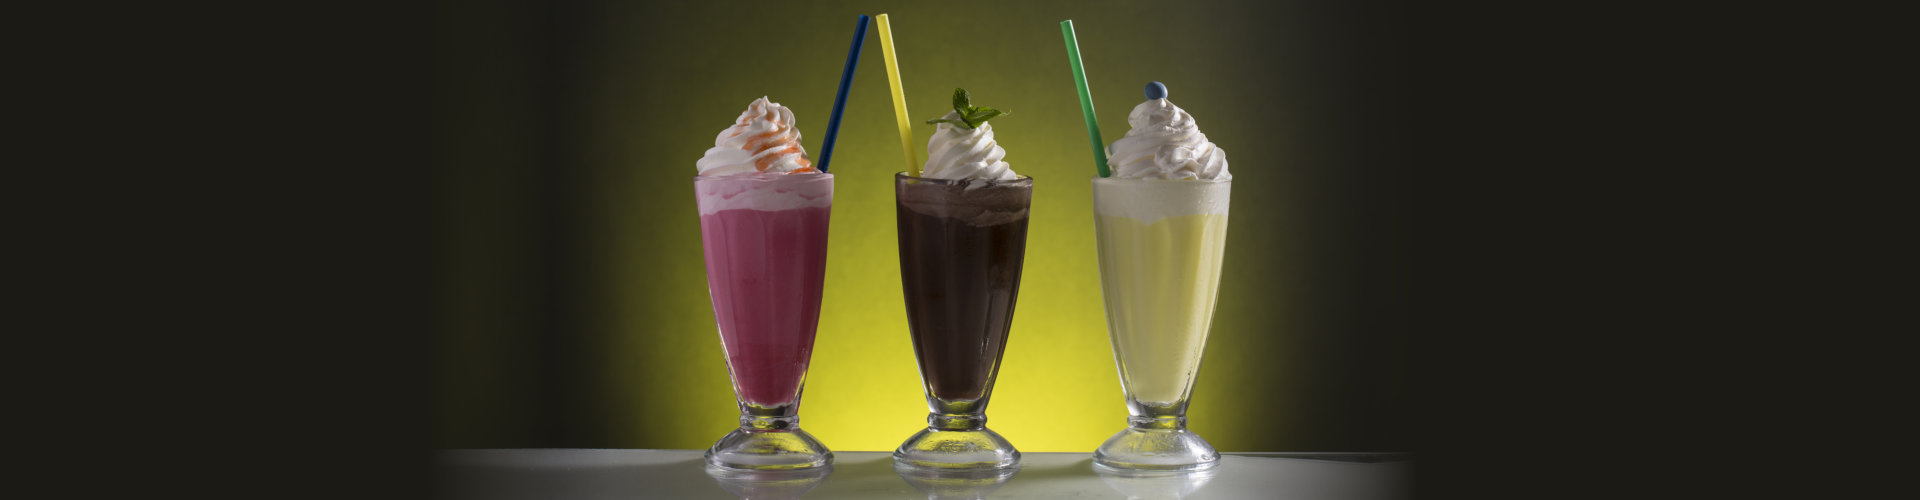 Colorful cold frappe for the hot summer days